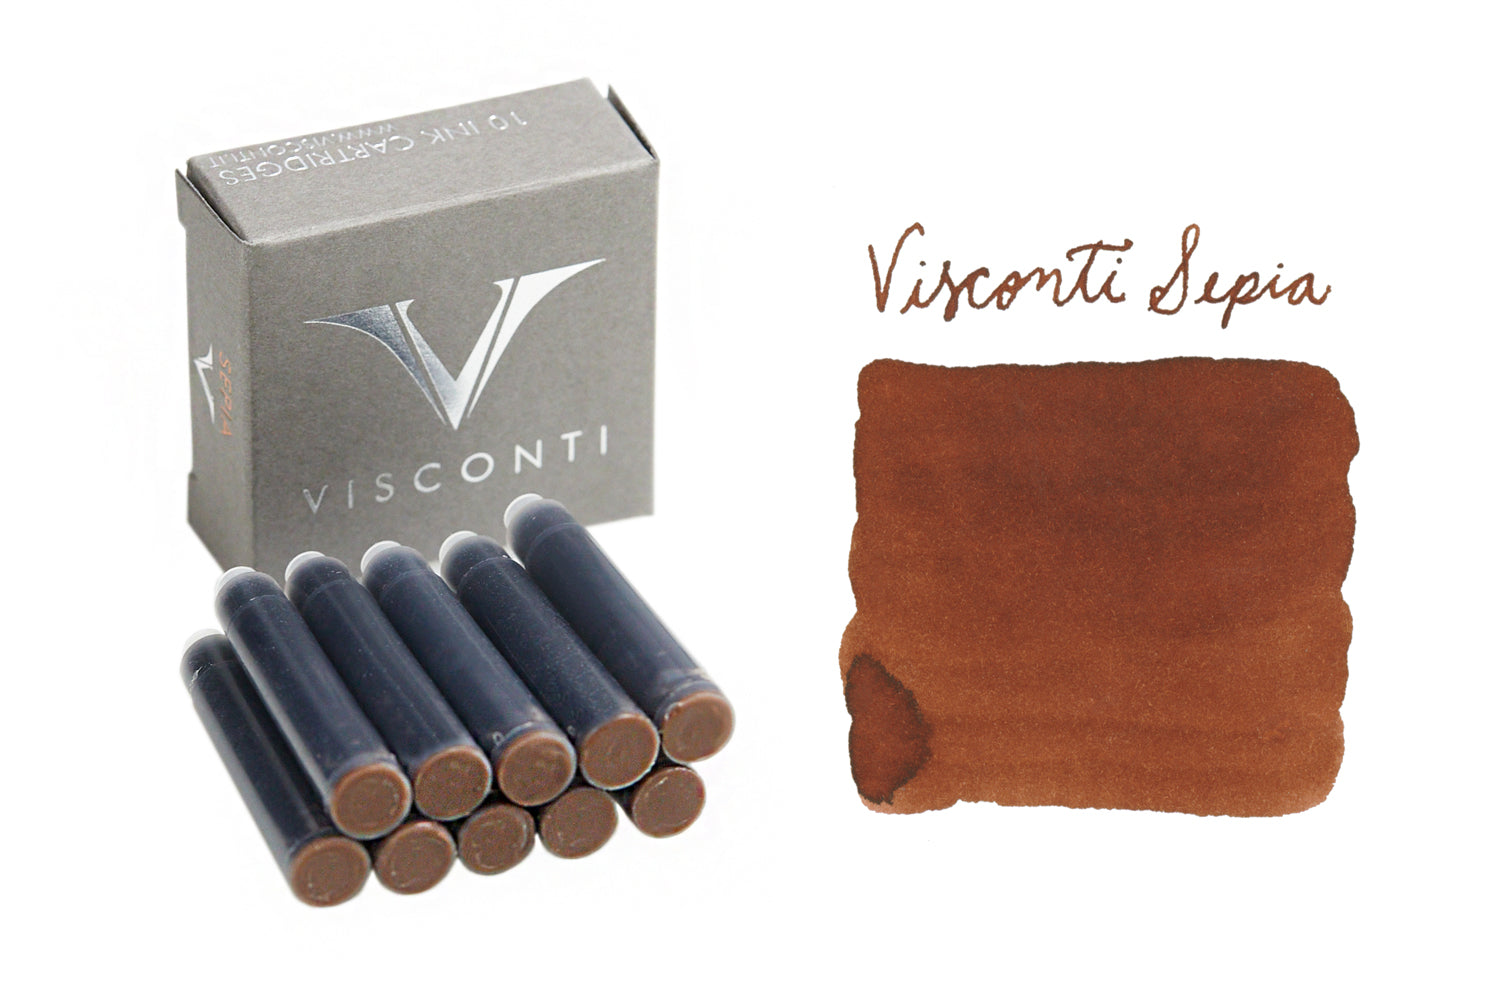 Visconti Sepia - Ink Cartridges